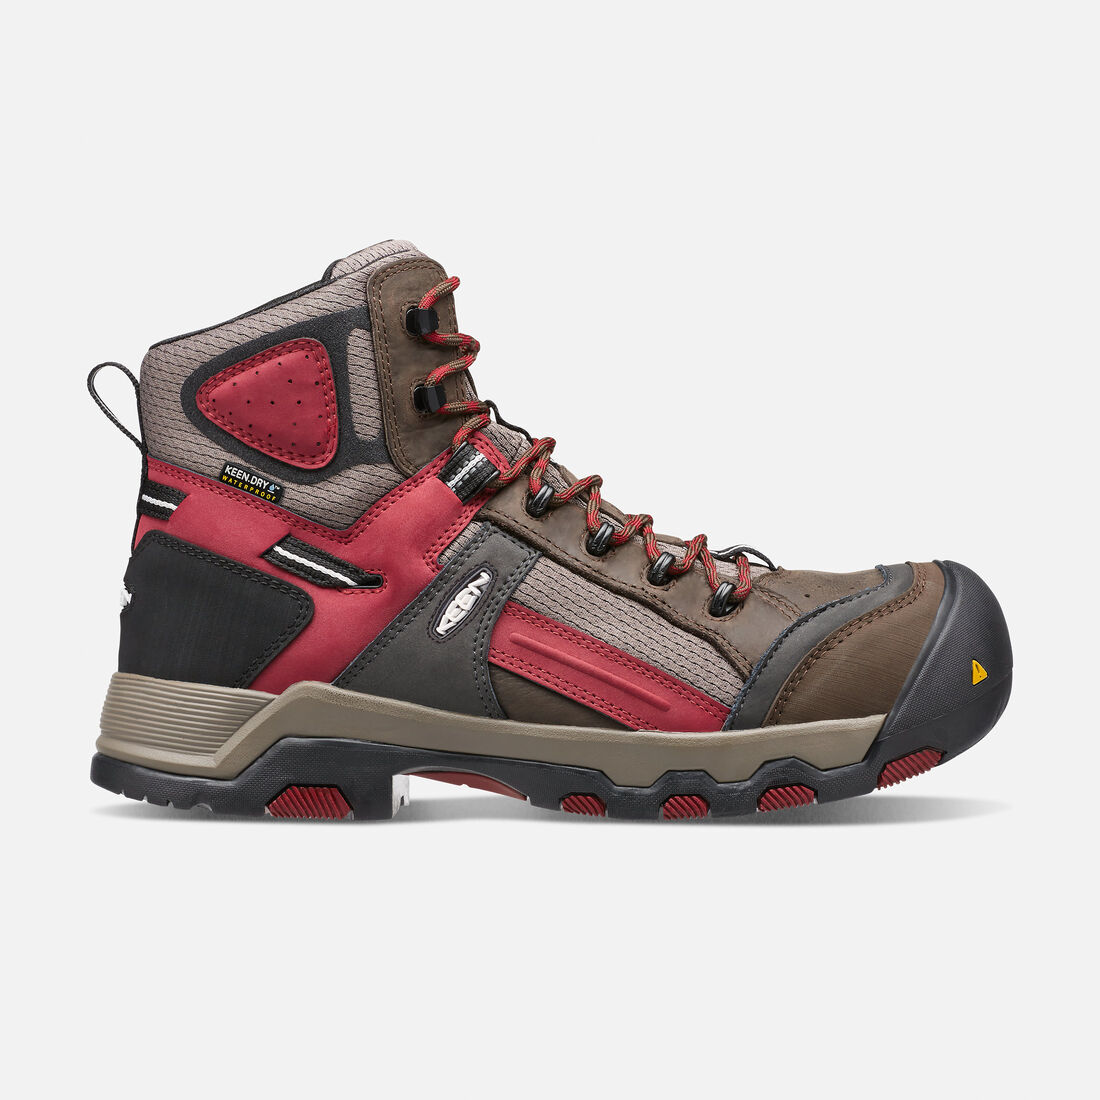 Men's DAVENPORT MID Waterproof (Composite Toe) in Cascade Brown/Red Dahlia - large view.